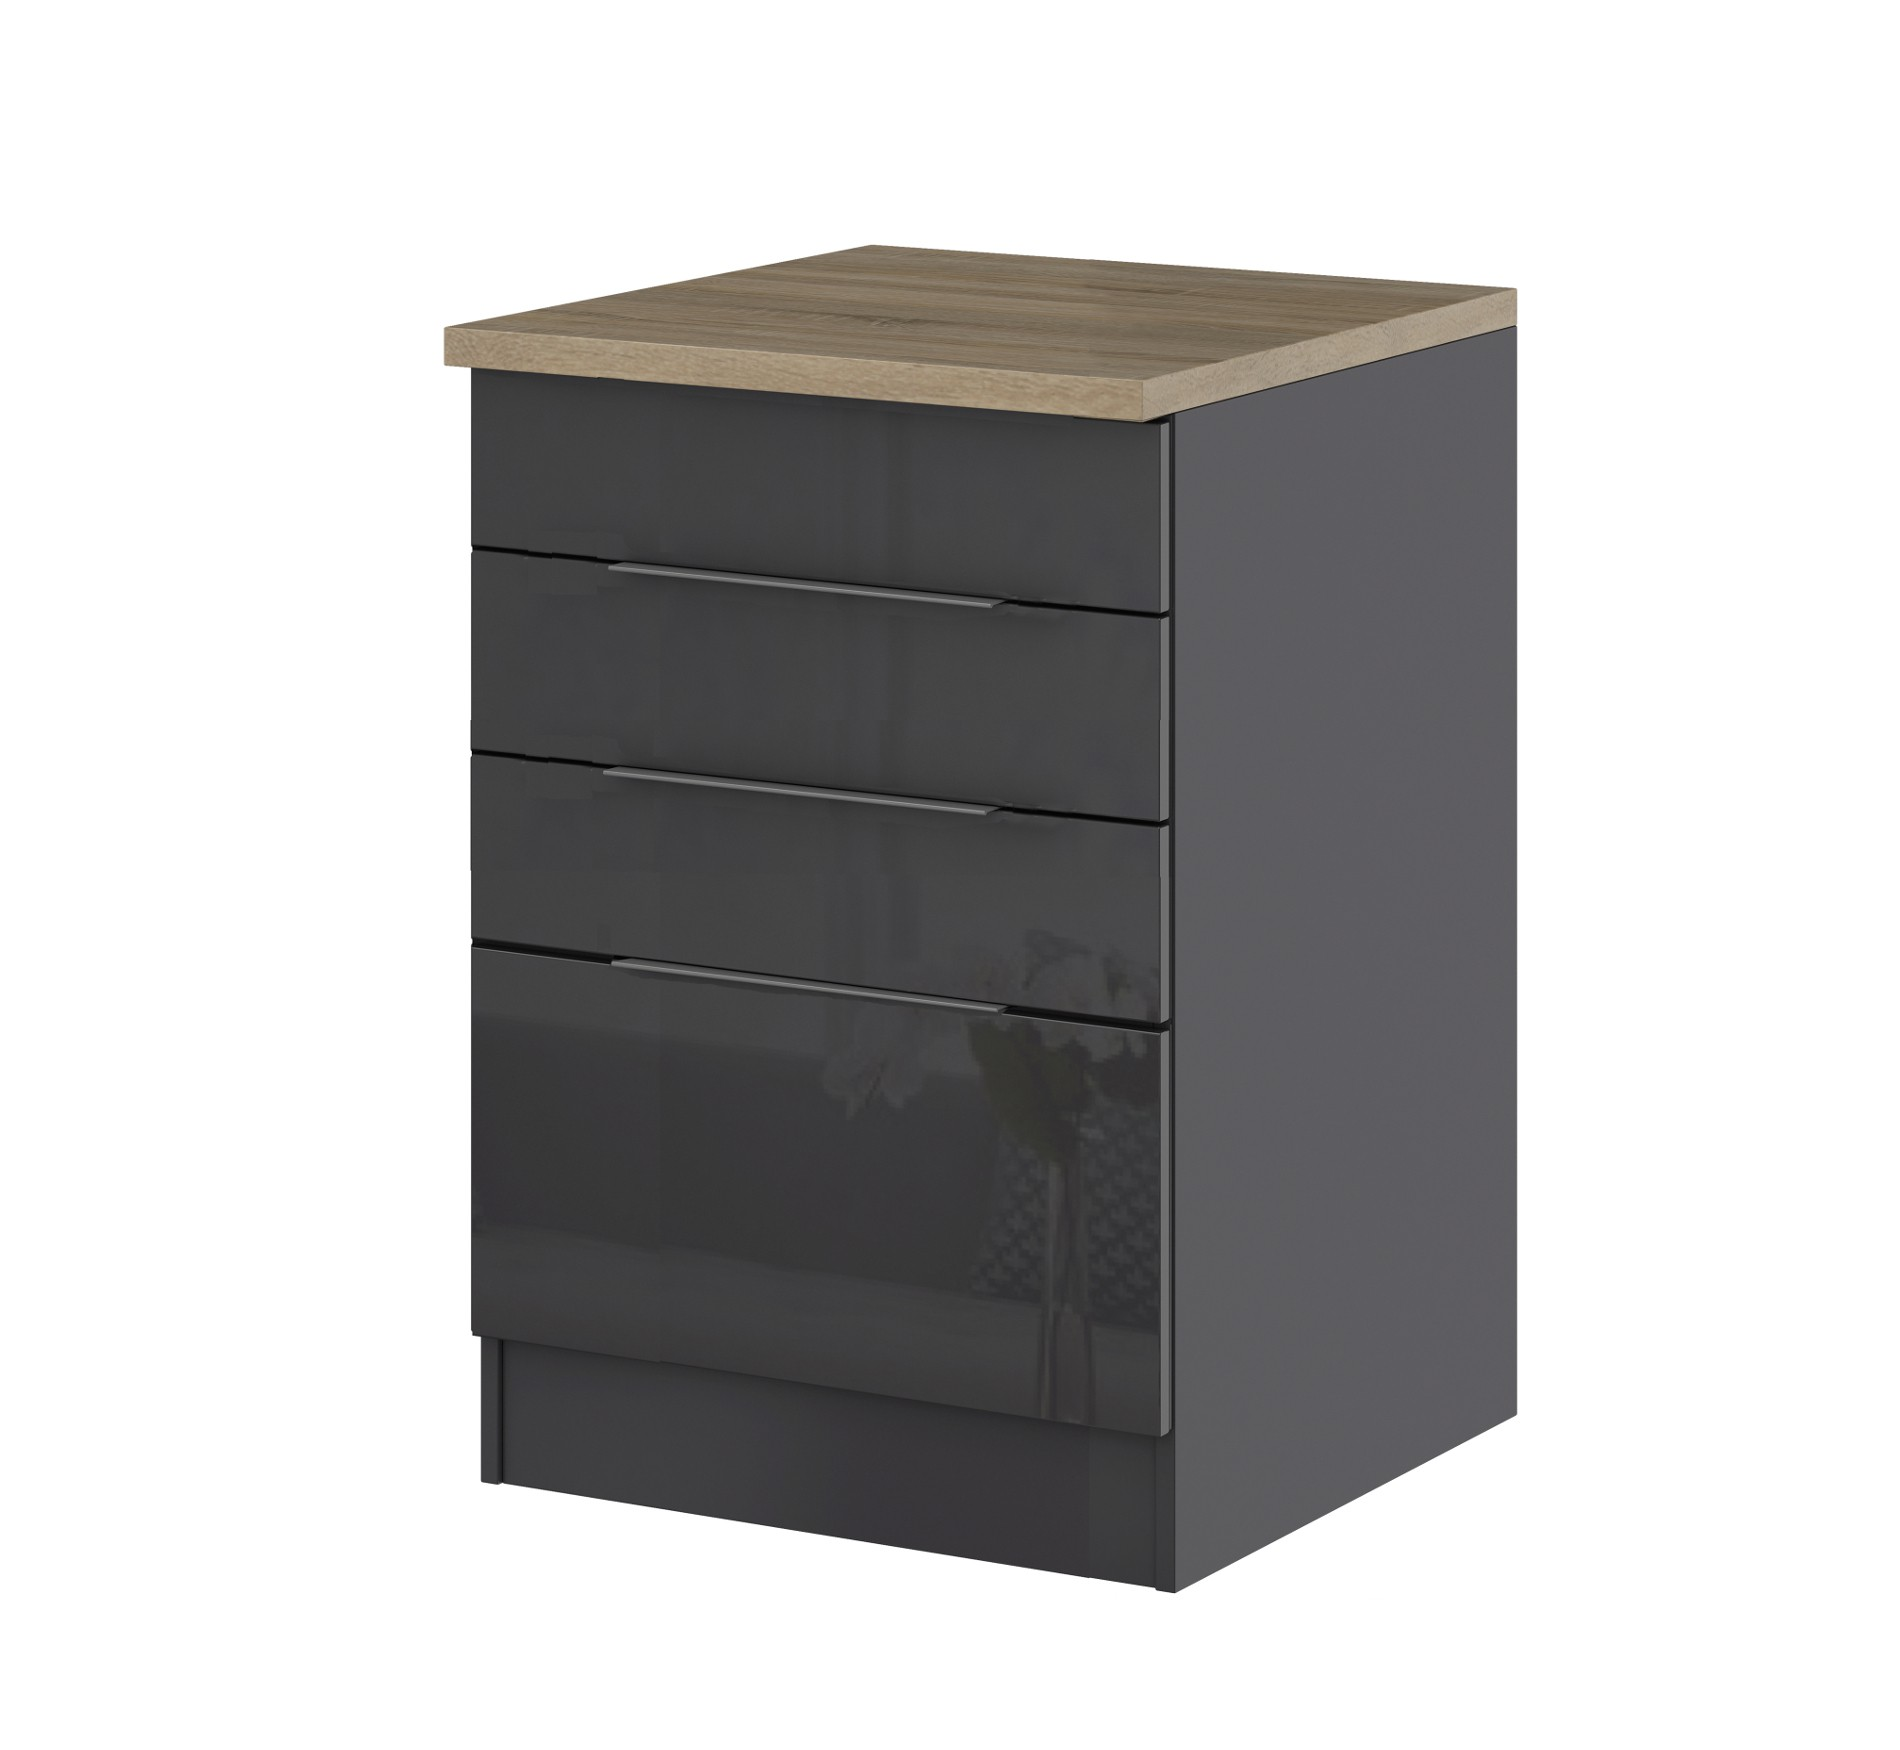 k chen unterschrank hamburg f r kochfeld 60 cm breit hochglanz grau k che hamburg. Black Bedroom Furniture Sets. Home Design Ideas